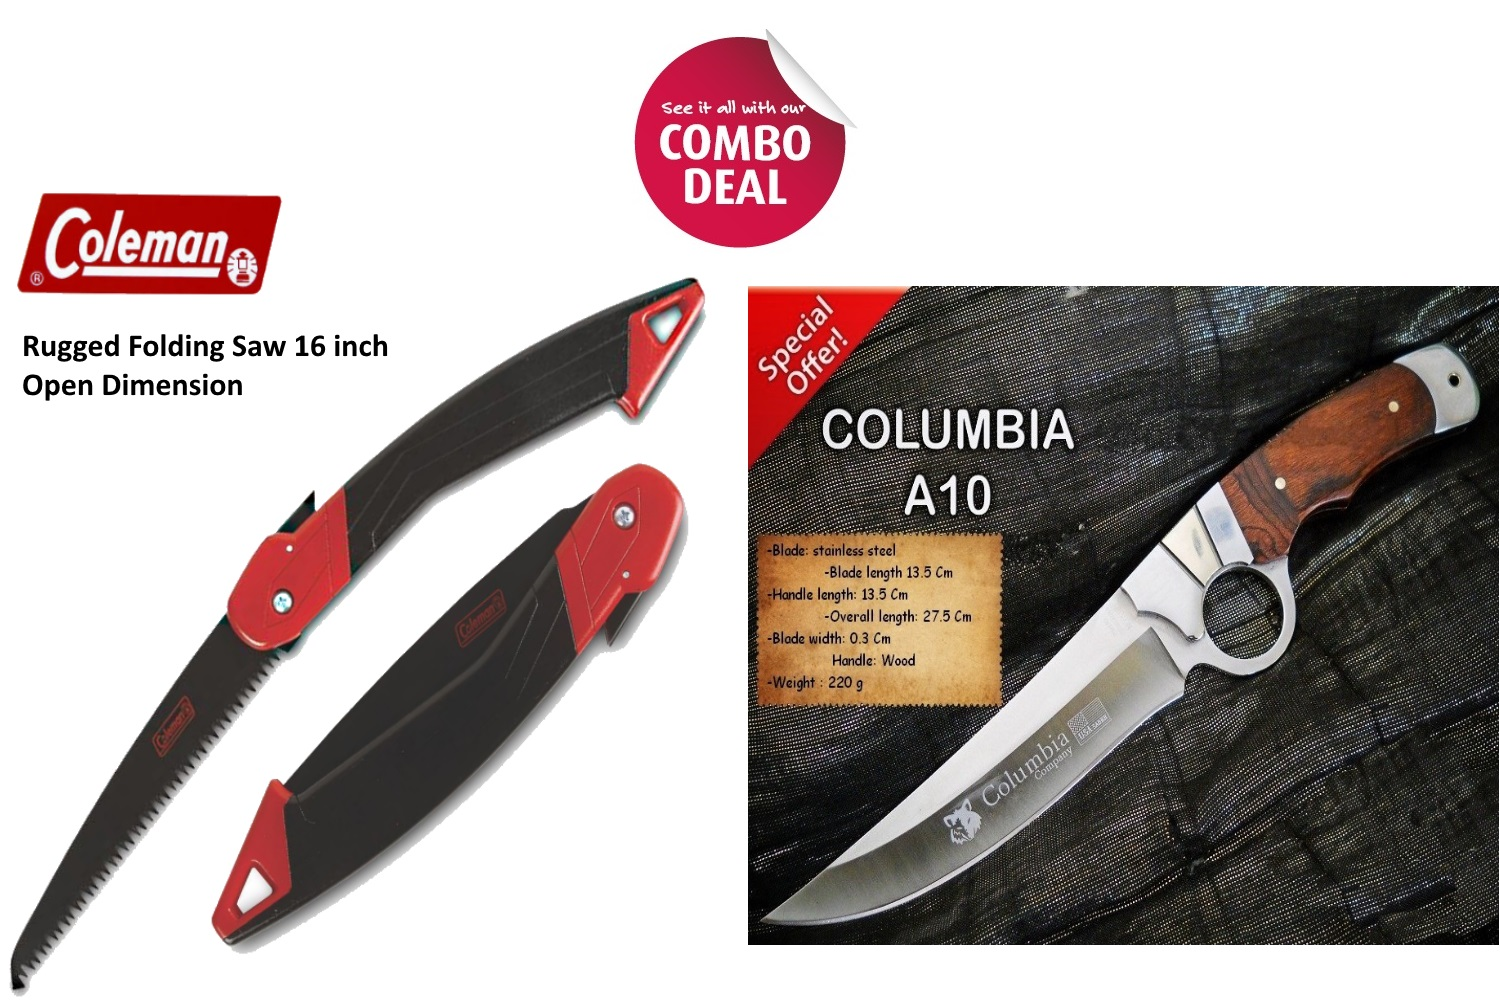 Coleman Outdoor Rugged Folding Saw with Columbia A-10 Saber Knife